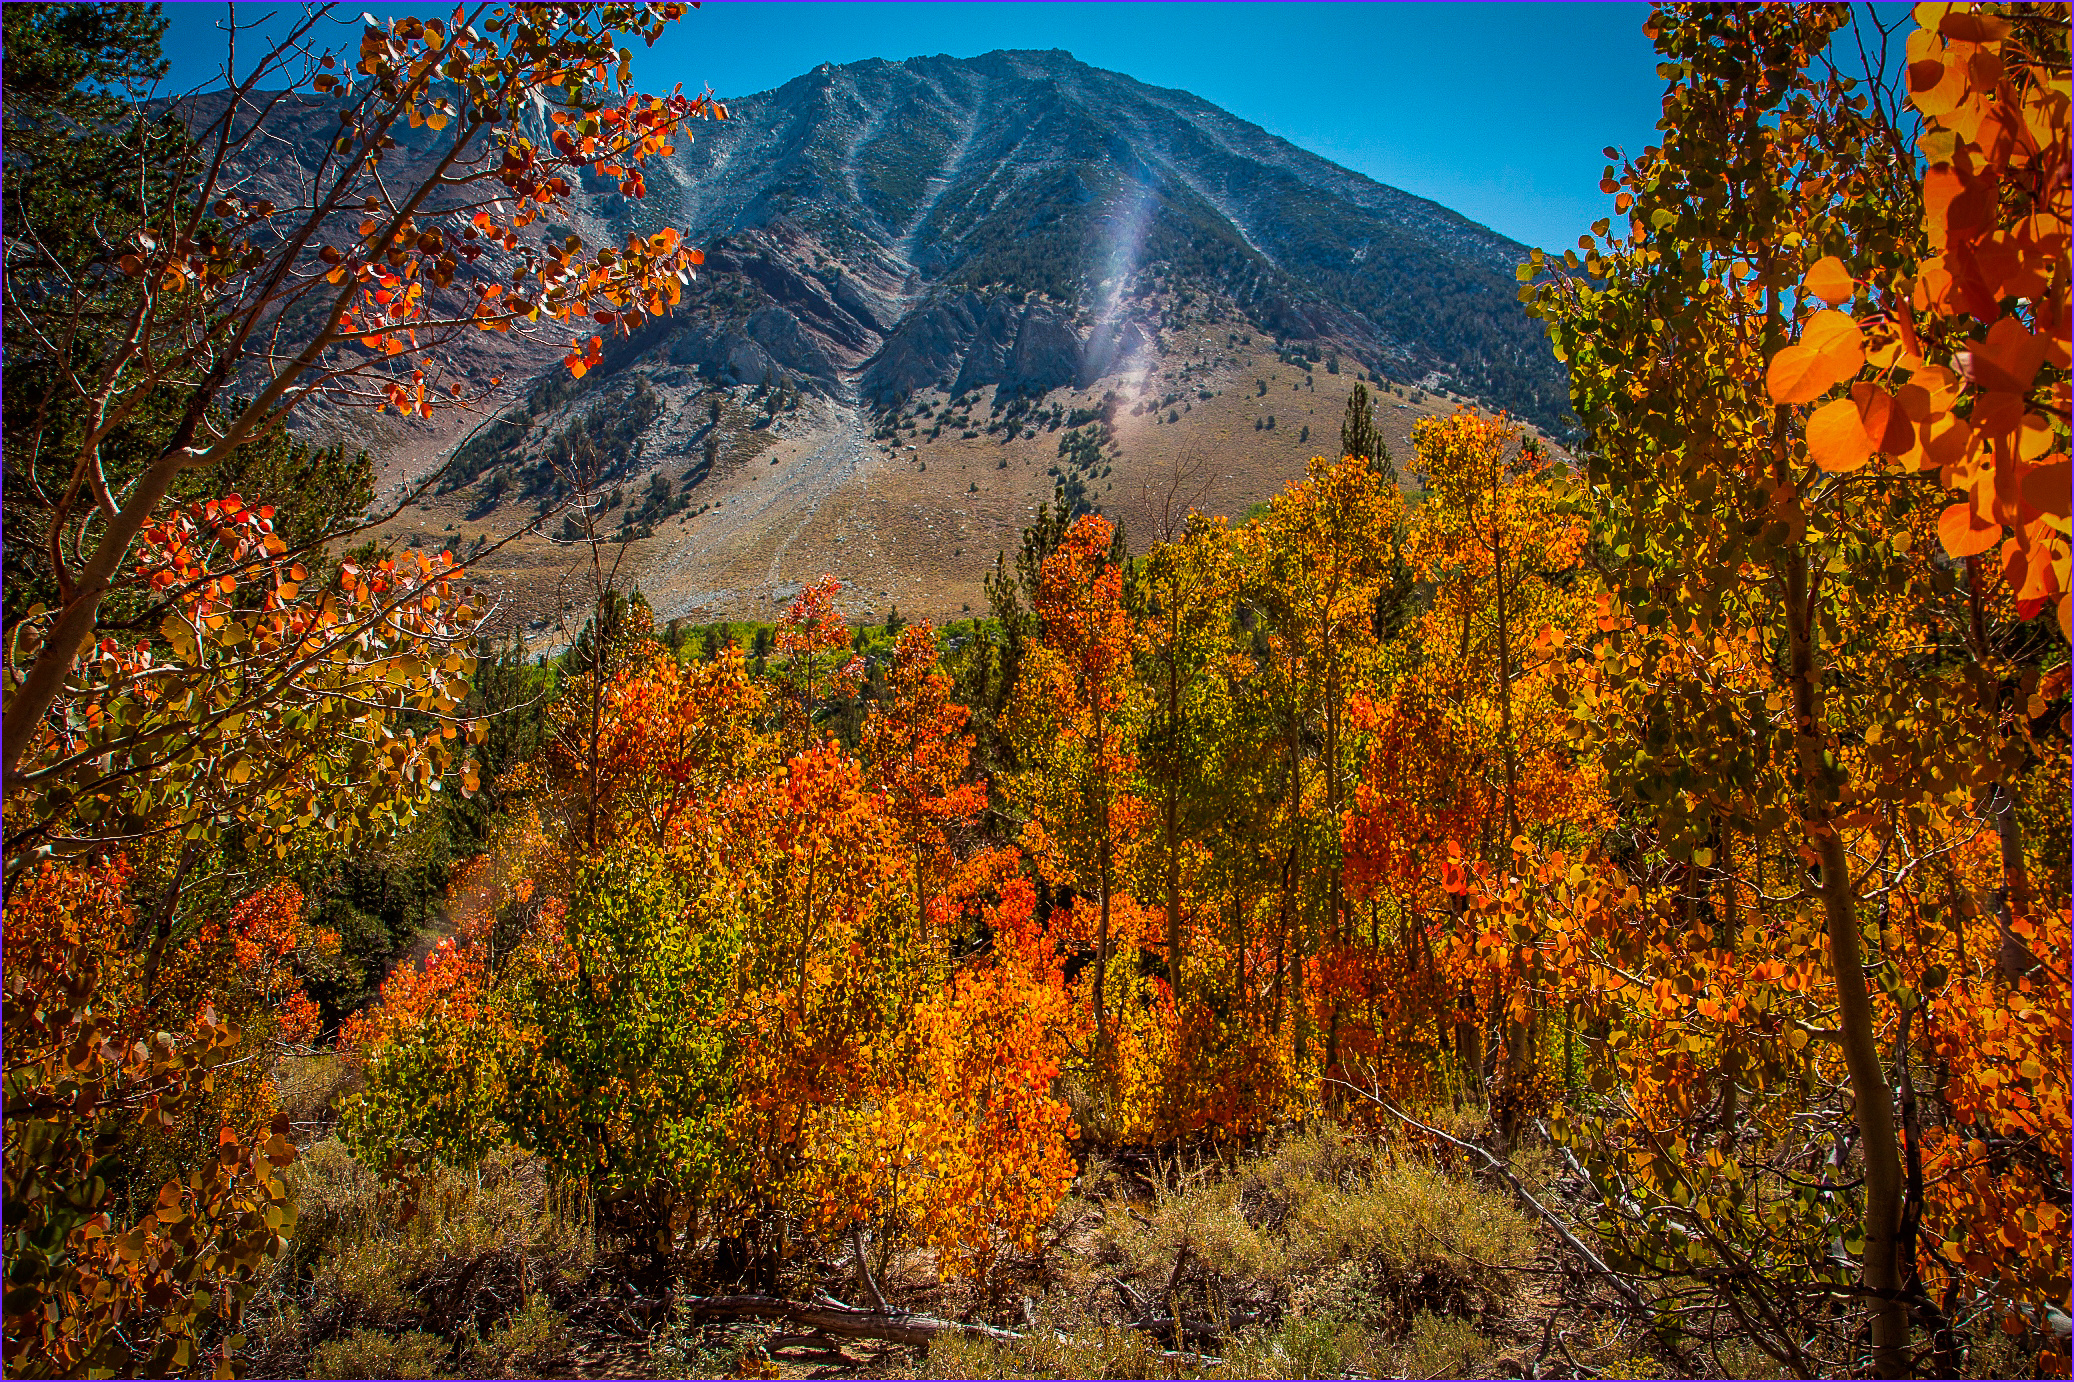 Fall Coloring Beautiful Photography Mono County From Just Starting to Near Peak – California